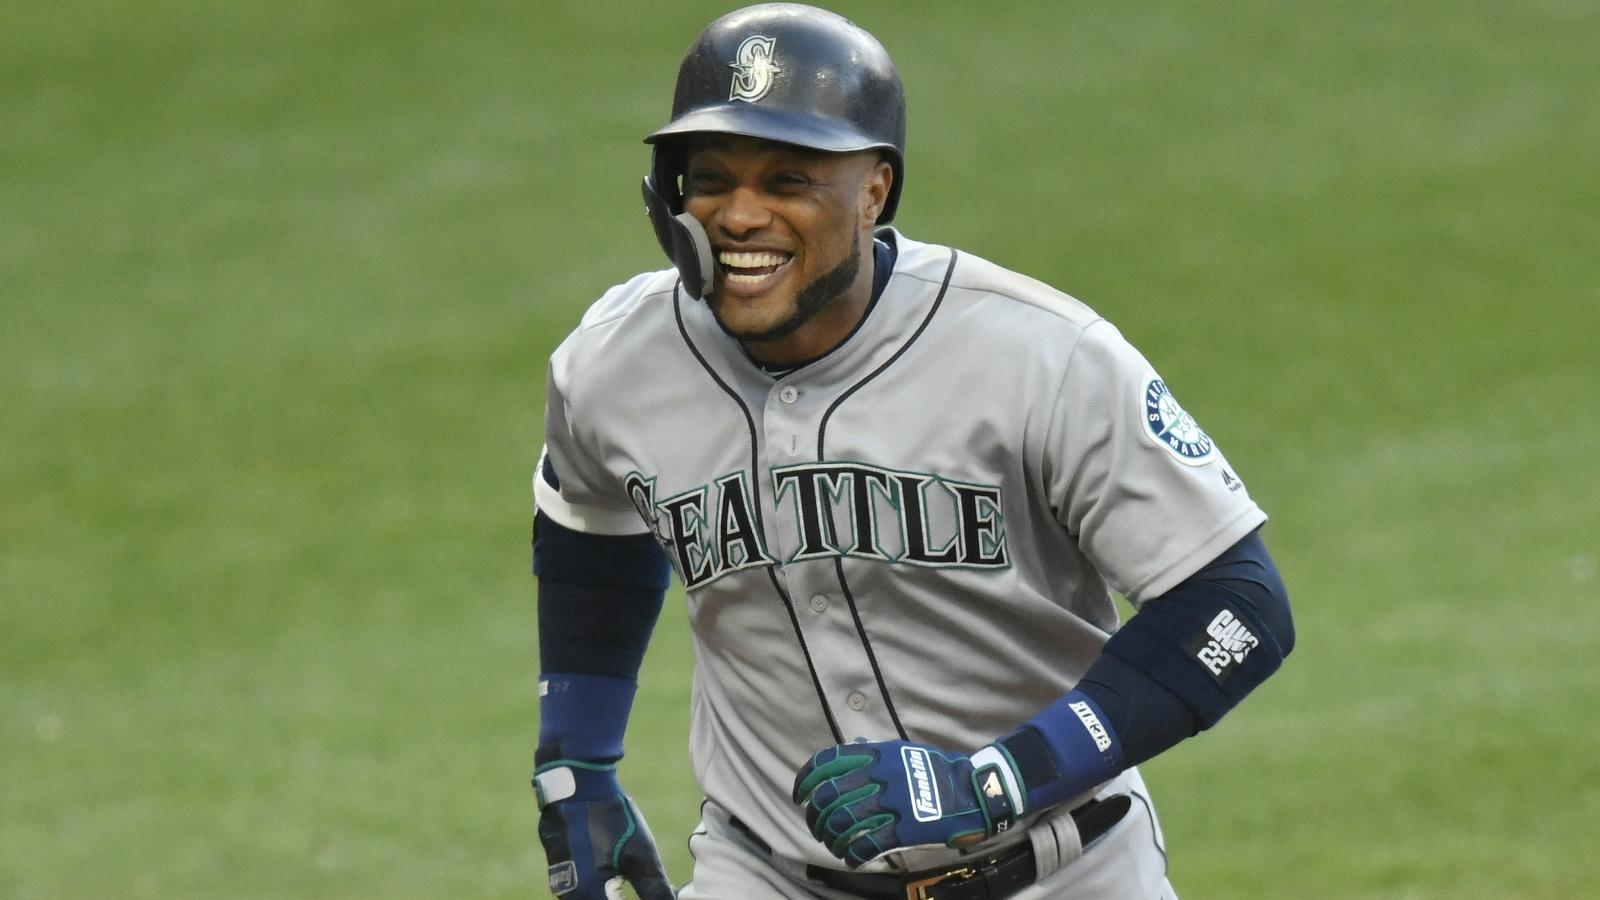 Robinson Cano apologizes about suspension, could play first upon